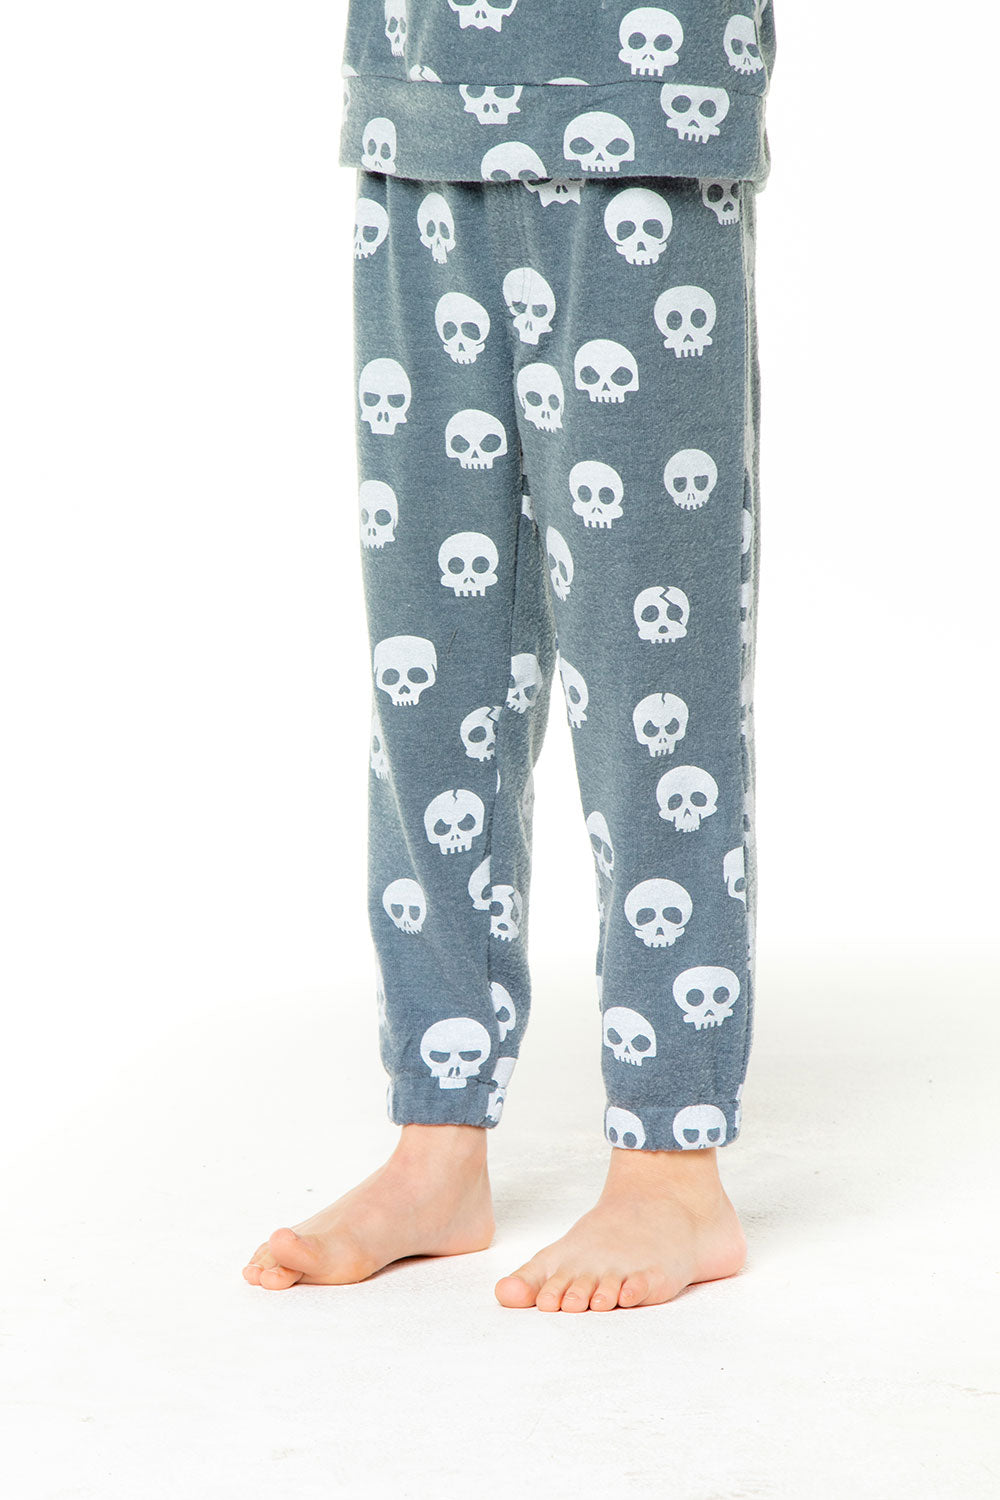 Skull Party Pants BOYS chaserbrand4.myshopify.com